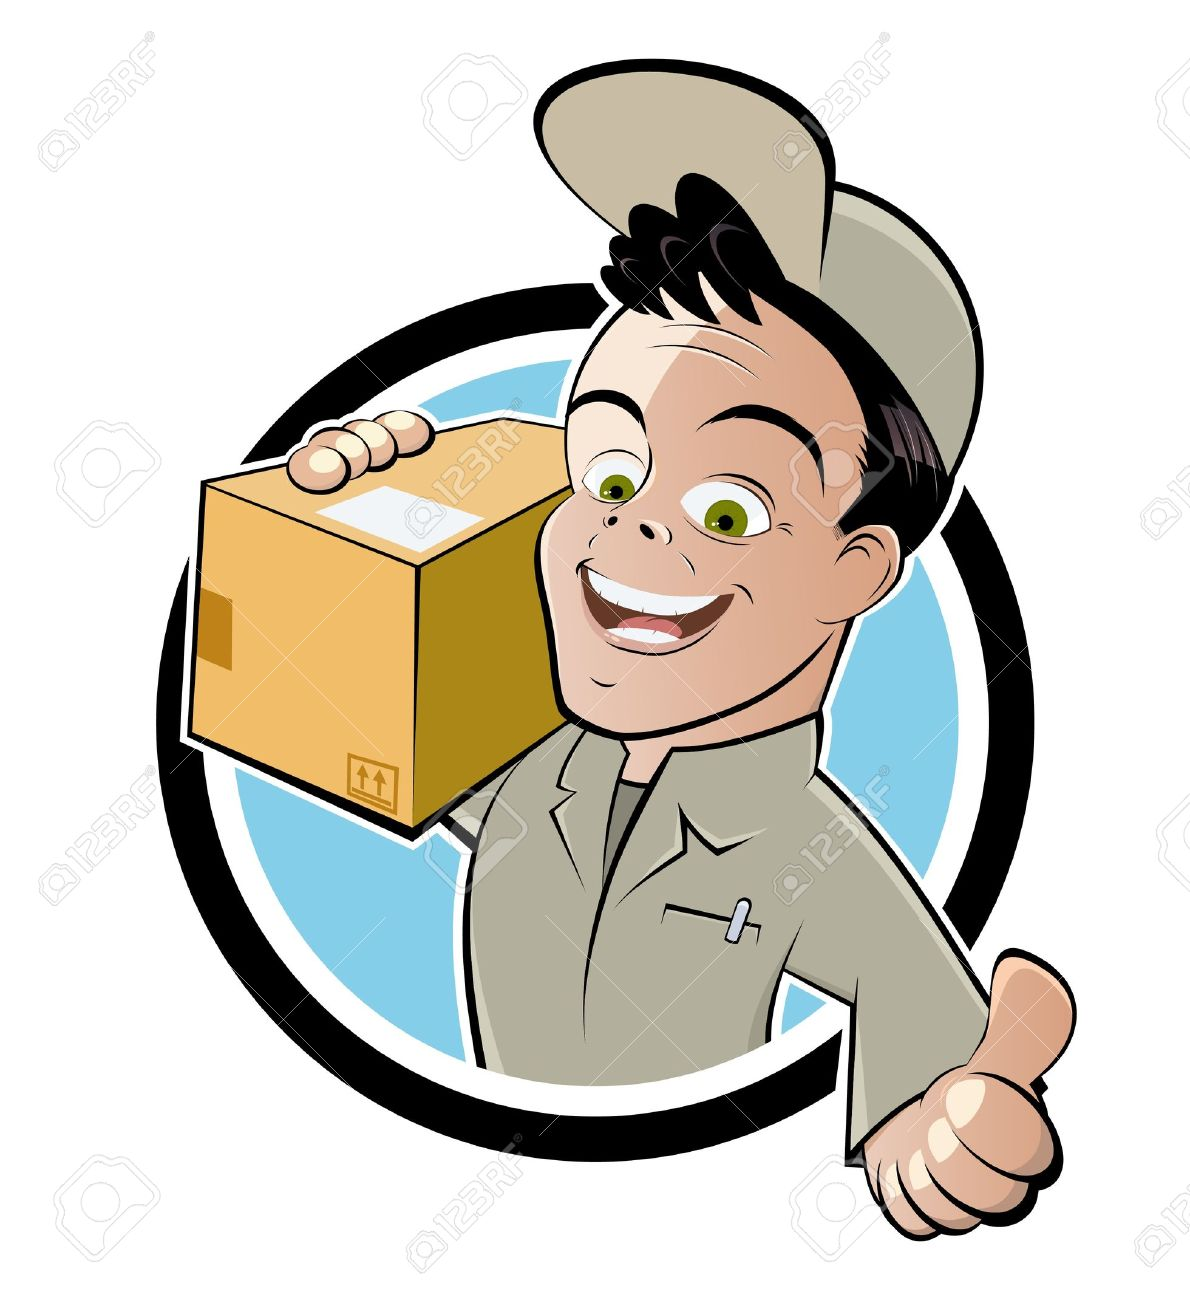 funny parcel service cartoon royalty free cliparts vectors and rh 123rf com clipart delivery man clipart delivery car